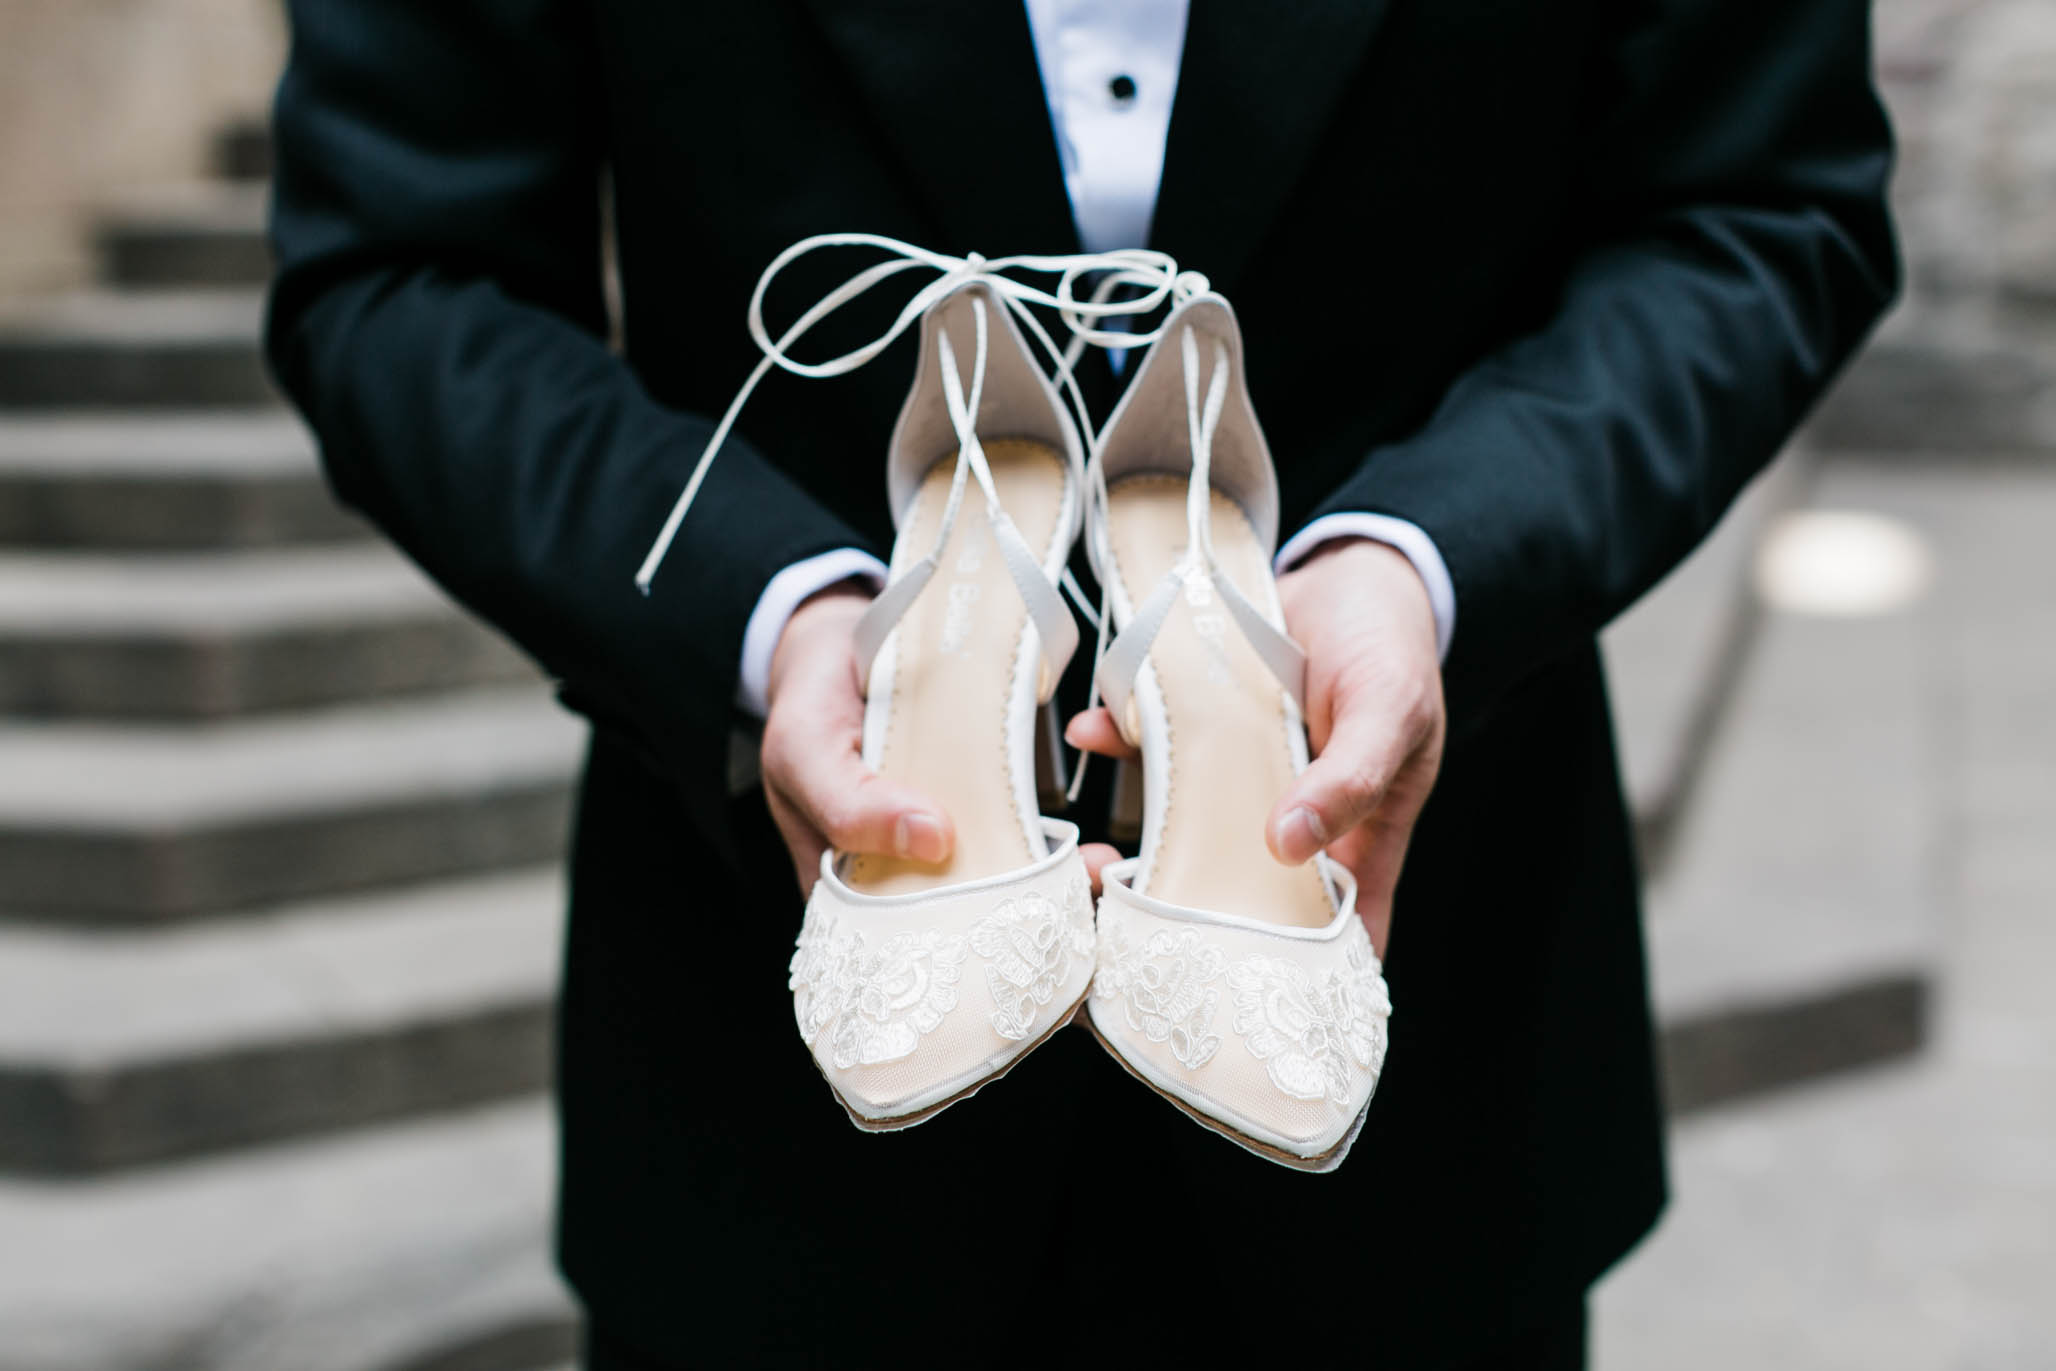 These  Bella Belle  shoes were perfect for the occasion.